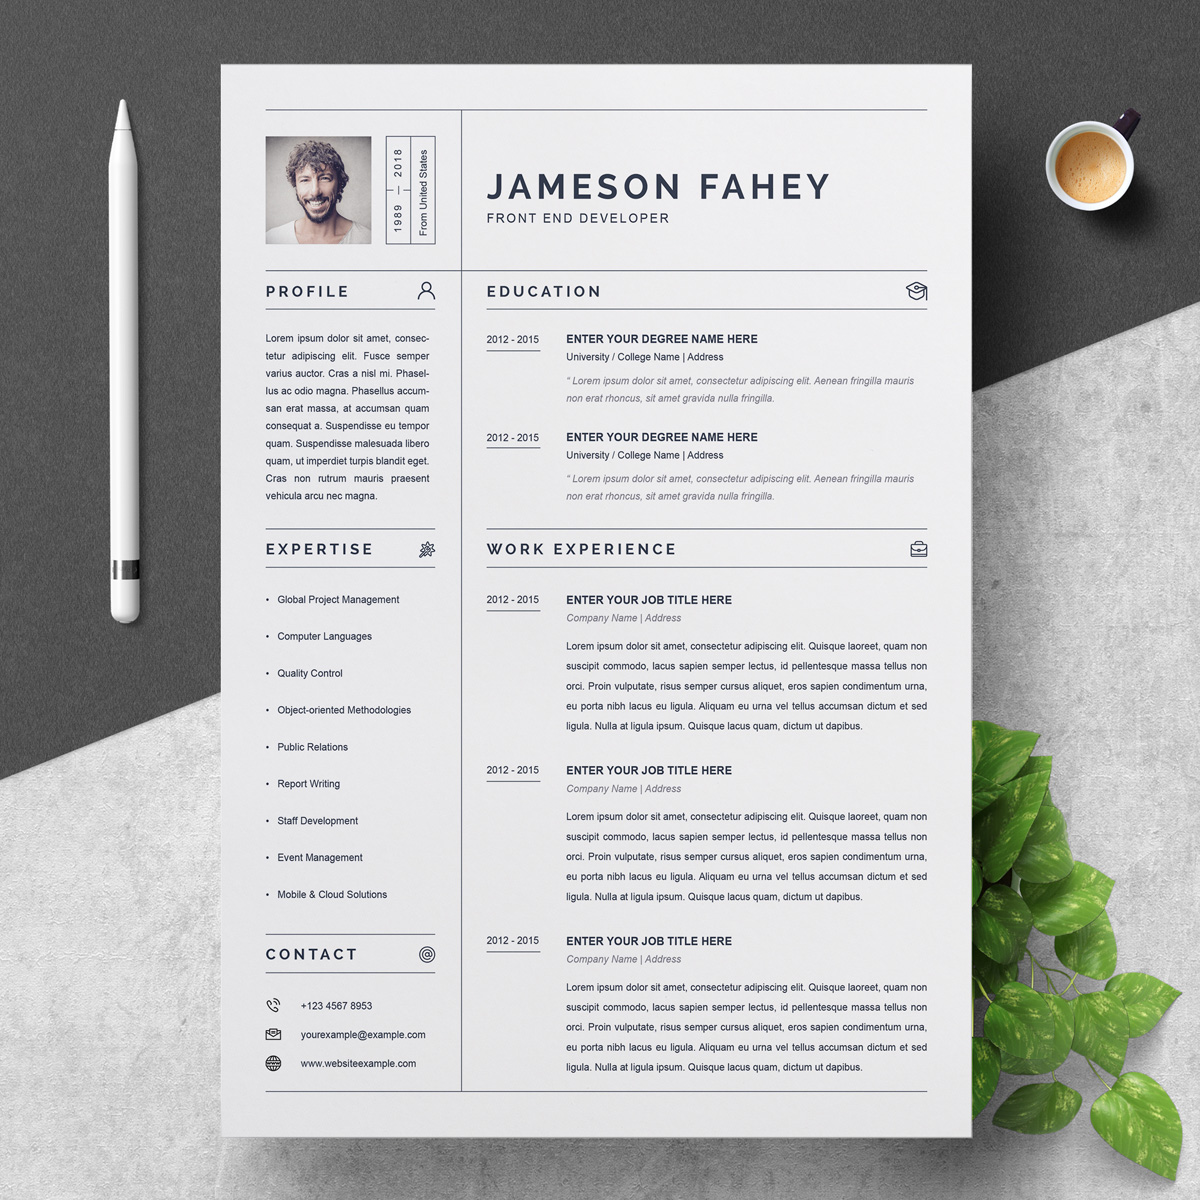 https://s3u.tmimgcdn.com/1860567-1553494240208_01_Clean-Professional-Creative-and-Modern-Resume-CV-Curriculum-Vitae-Design-Template-MS-Word-Apple-Pages-PSD-Free-Download.jpg